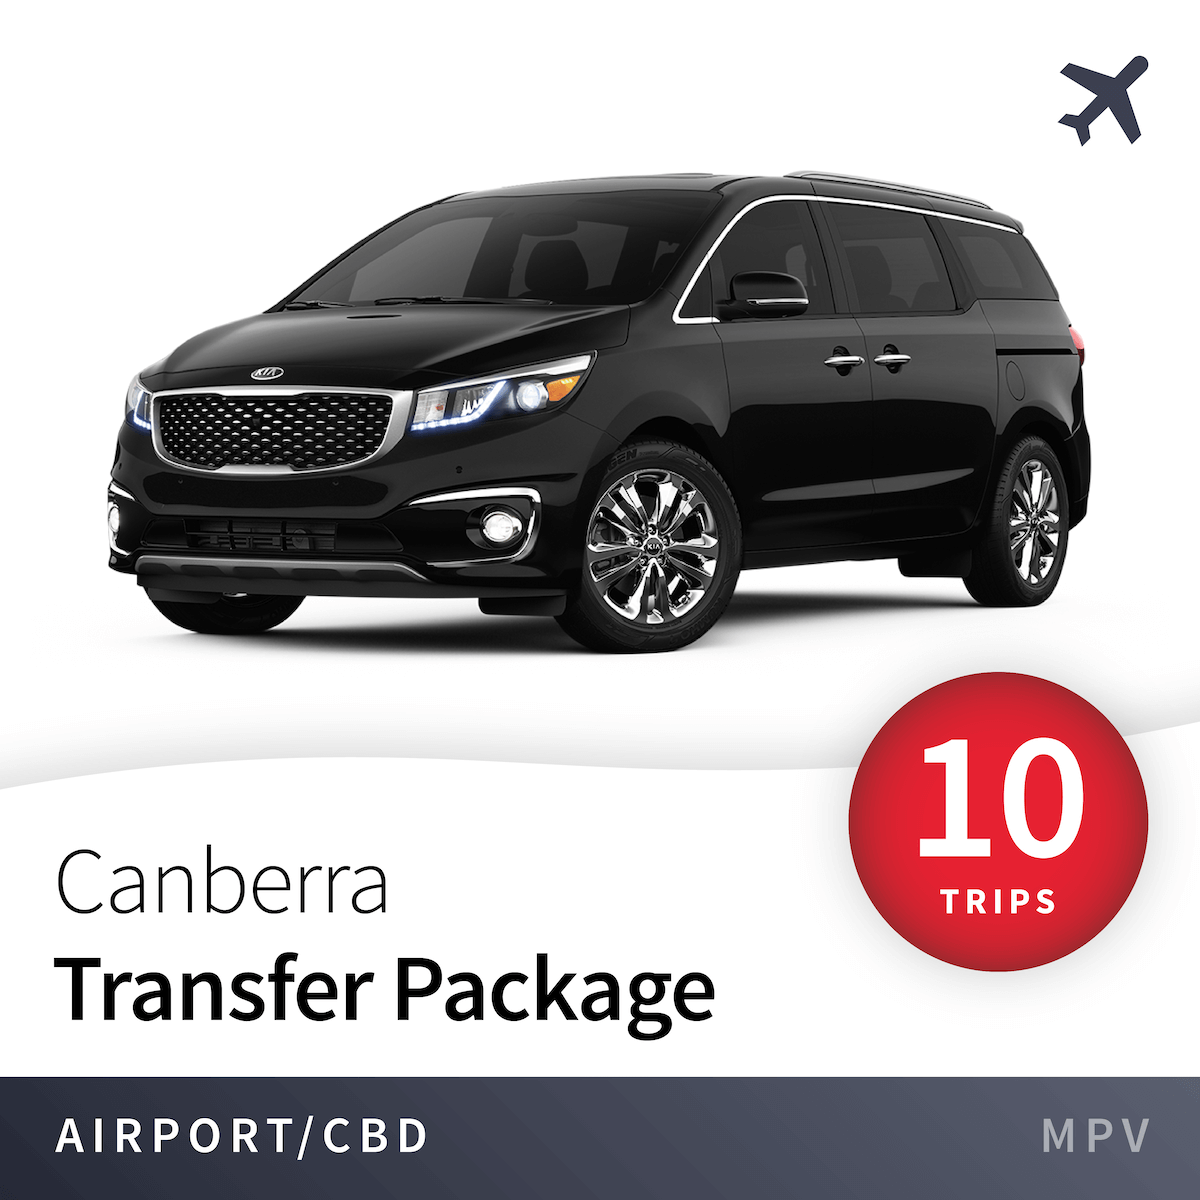 Canberra Airport Transfer Package - MPV (10 Trips) 1